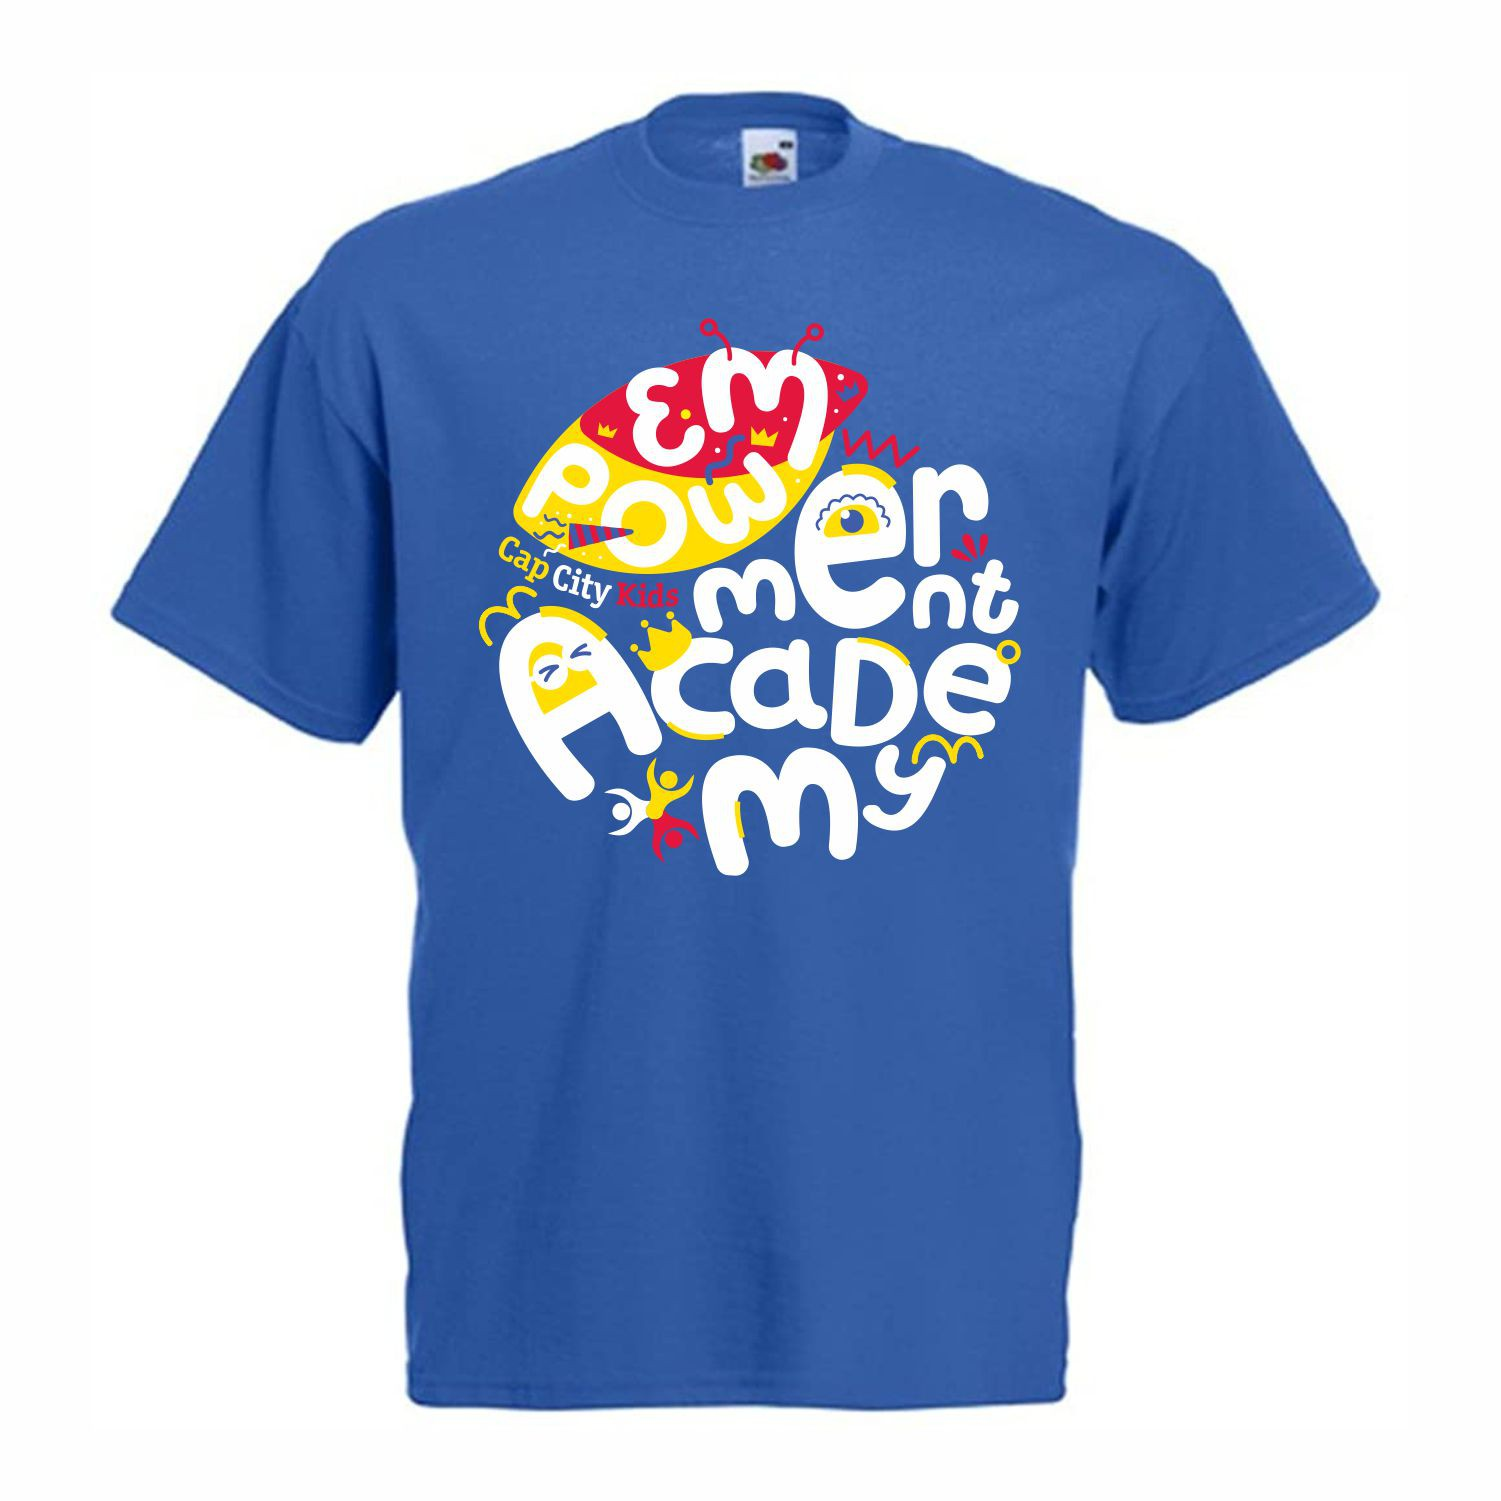 T-shirt Design for Empowerment Academy Back to School Event